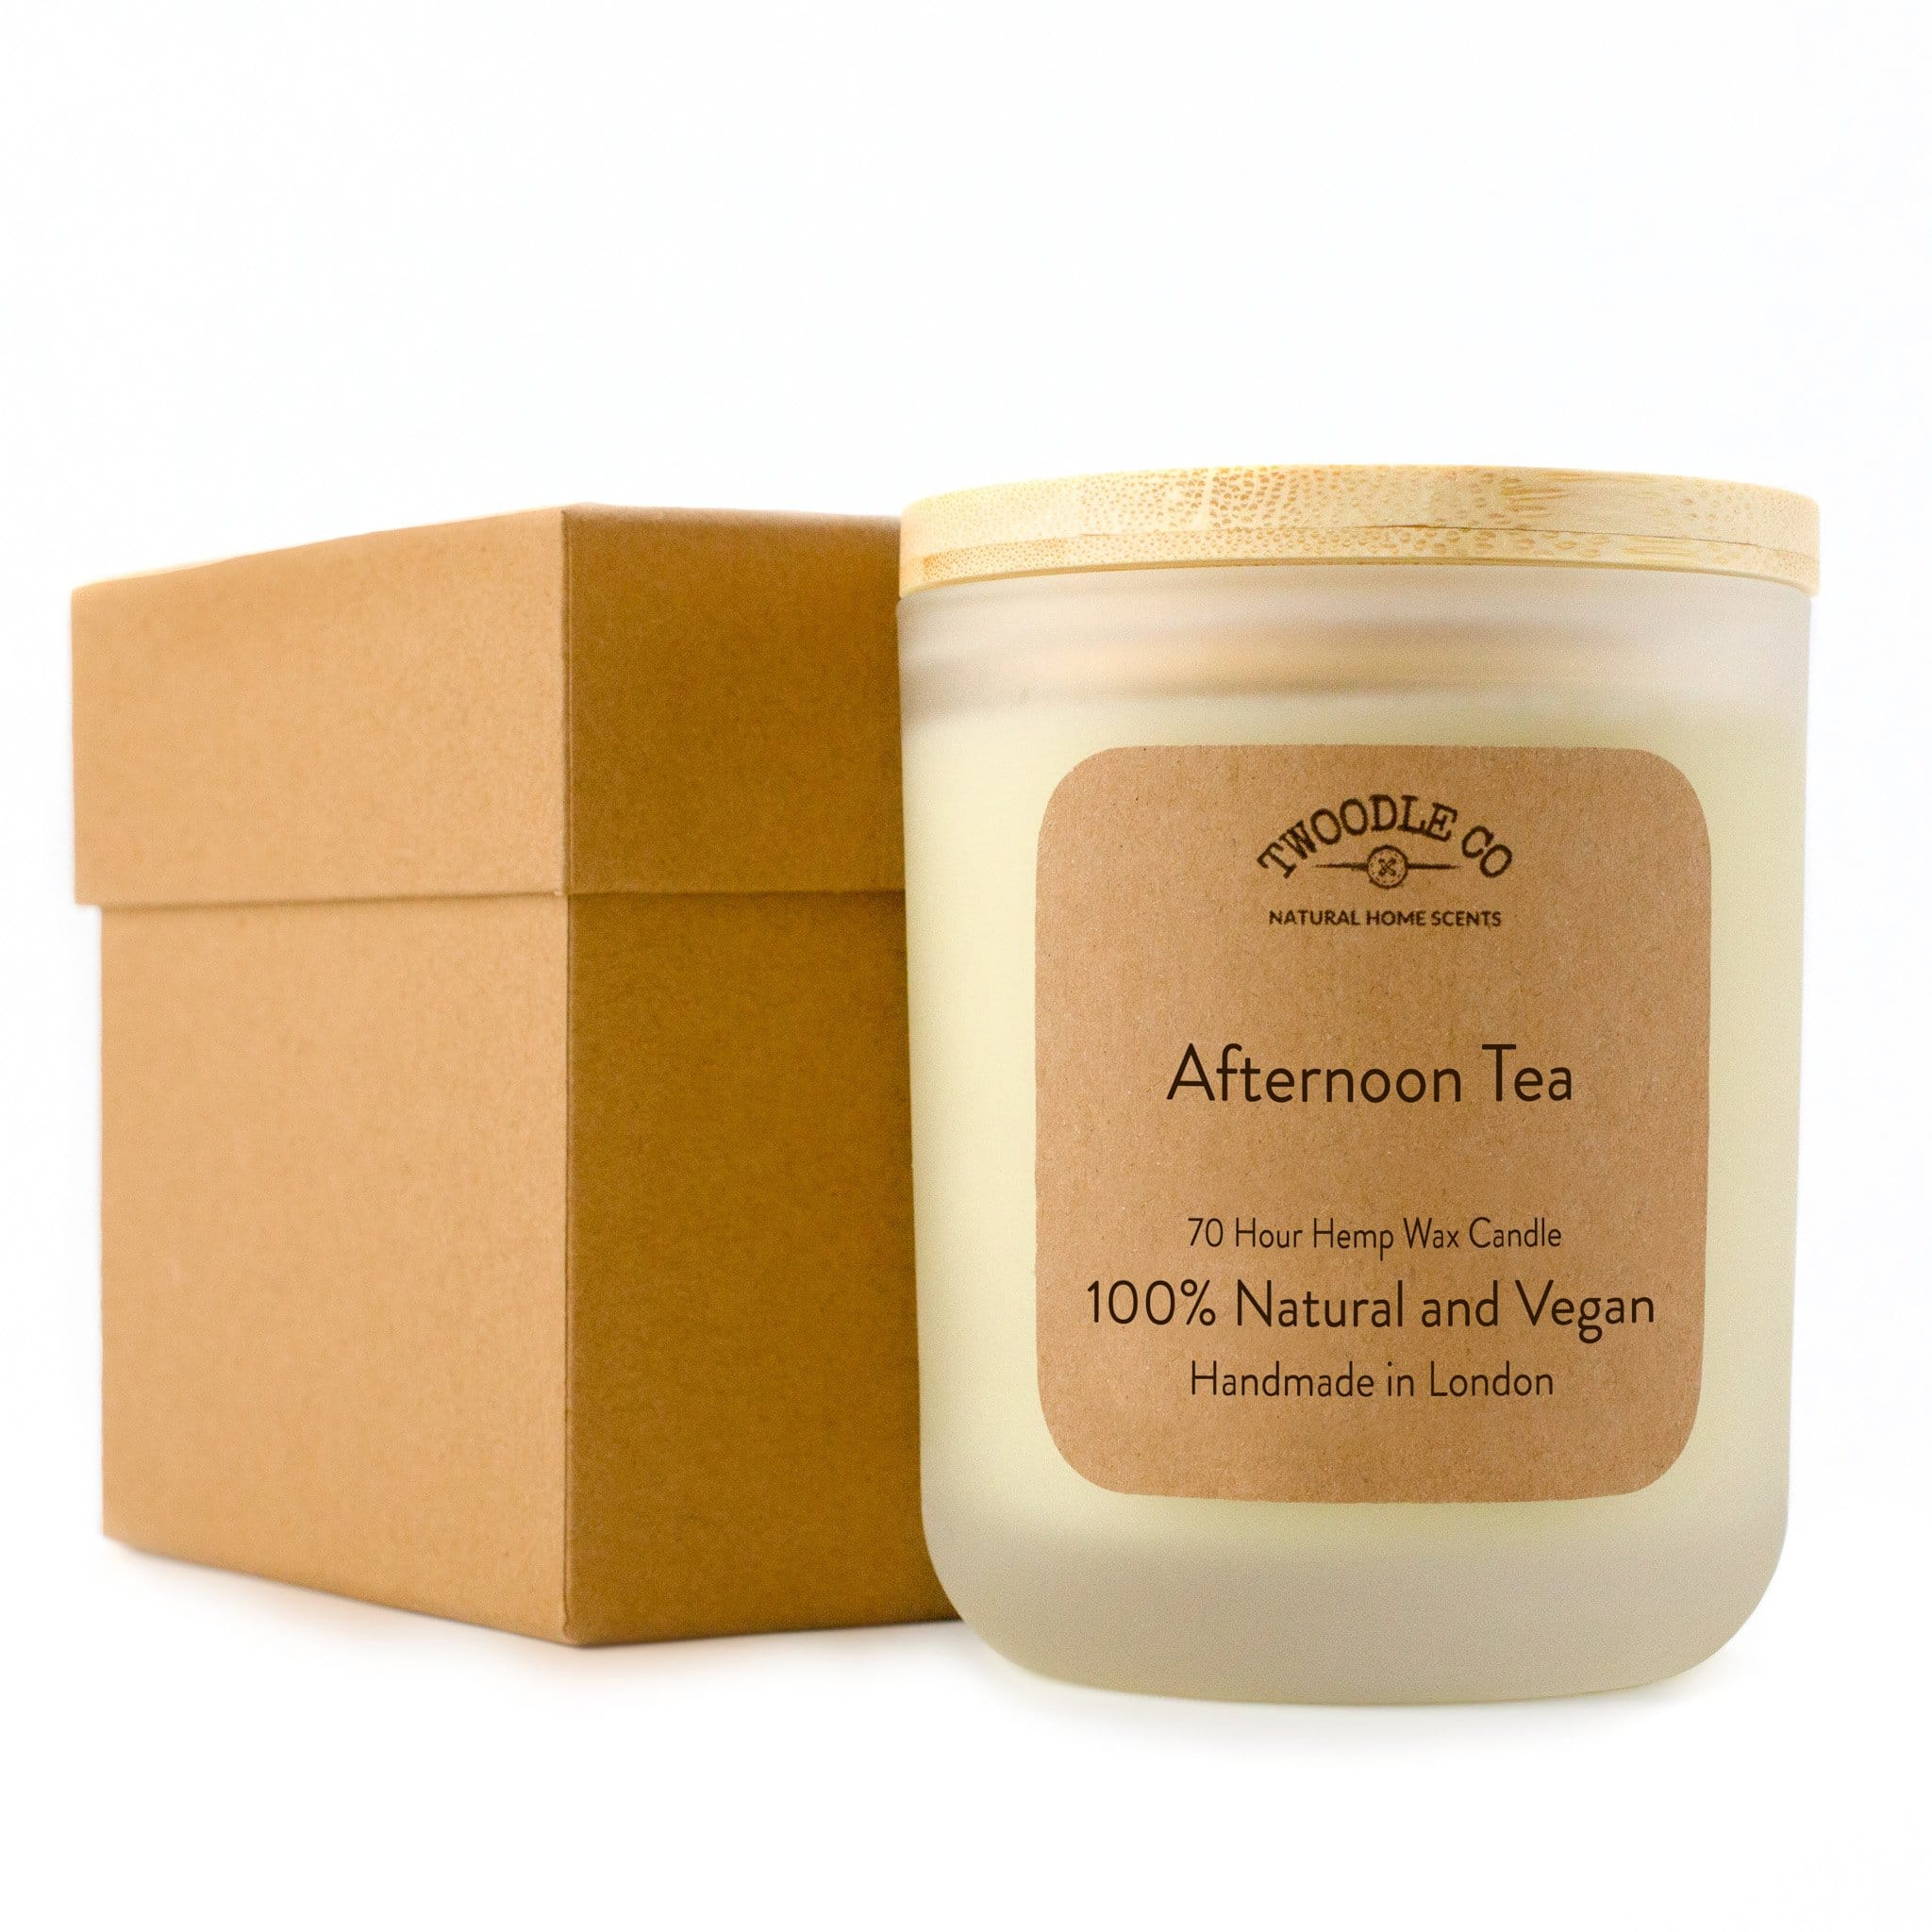 Afternoon Tea Large Scented Candle 70 Hour